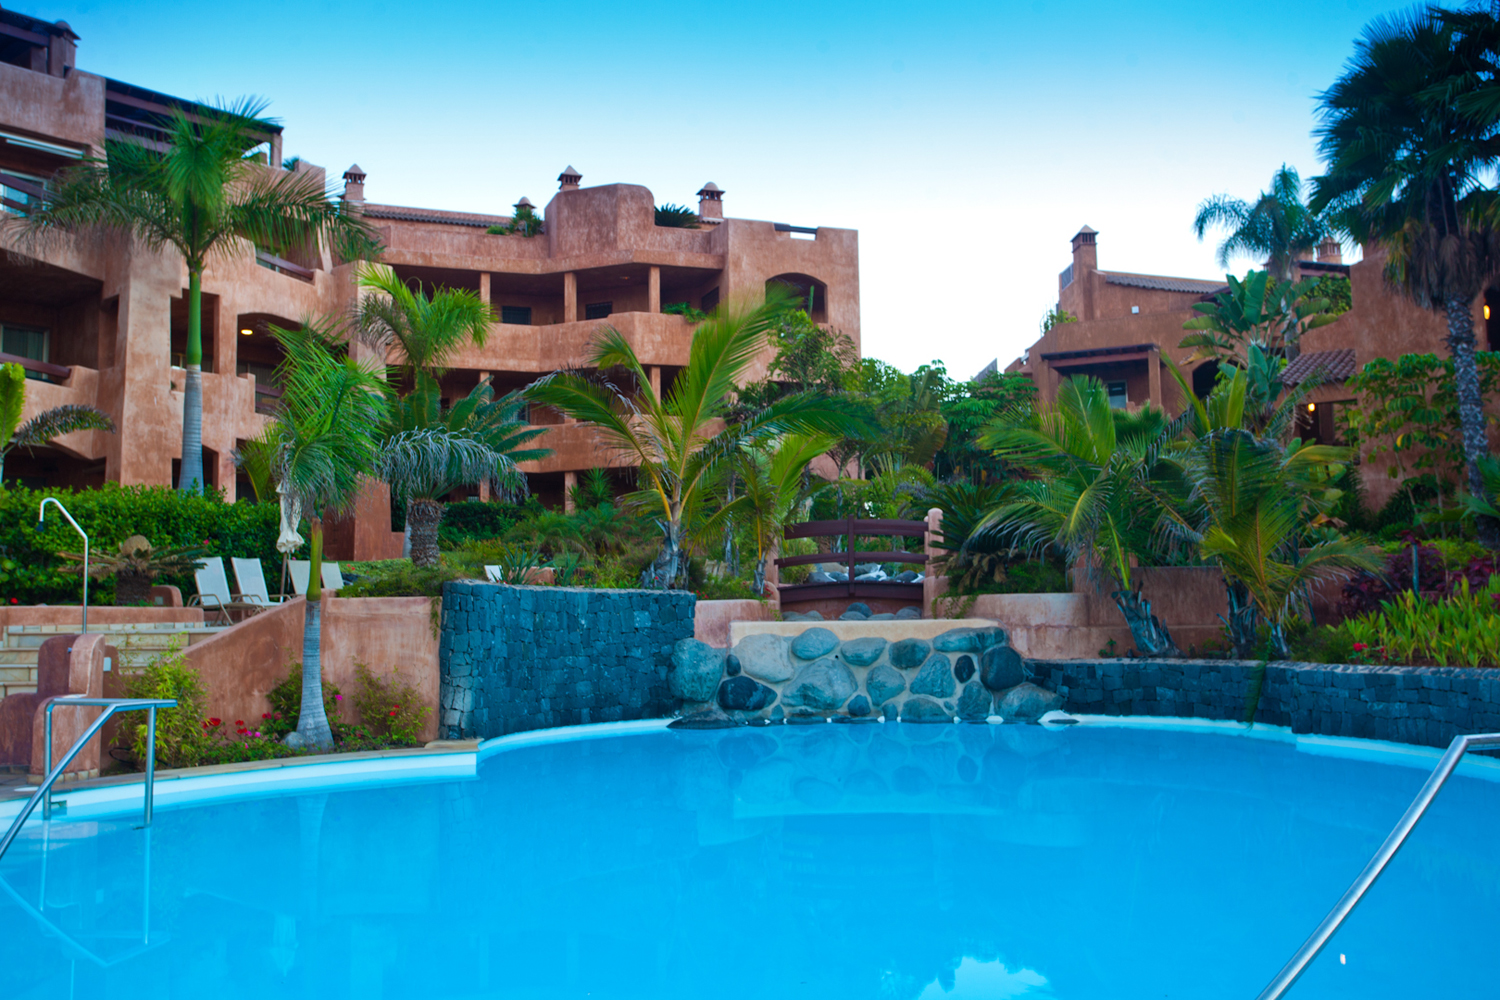 Apartment for Sale at Los Menceyes Paseo Alondra Palm Mar, Tenerife Canary Islands 38632 Spain